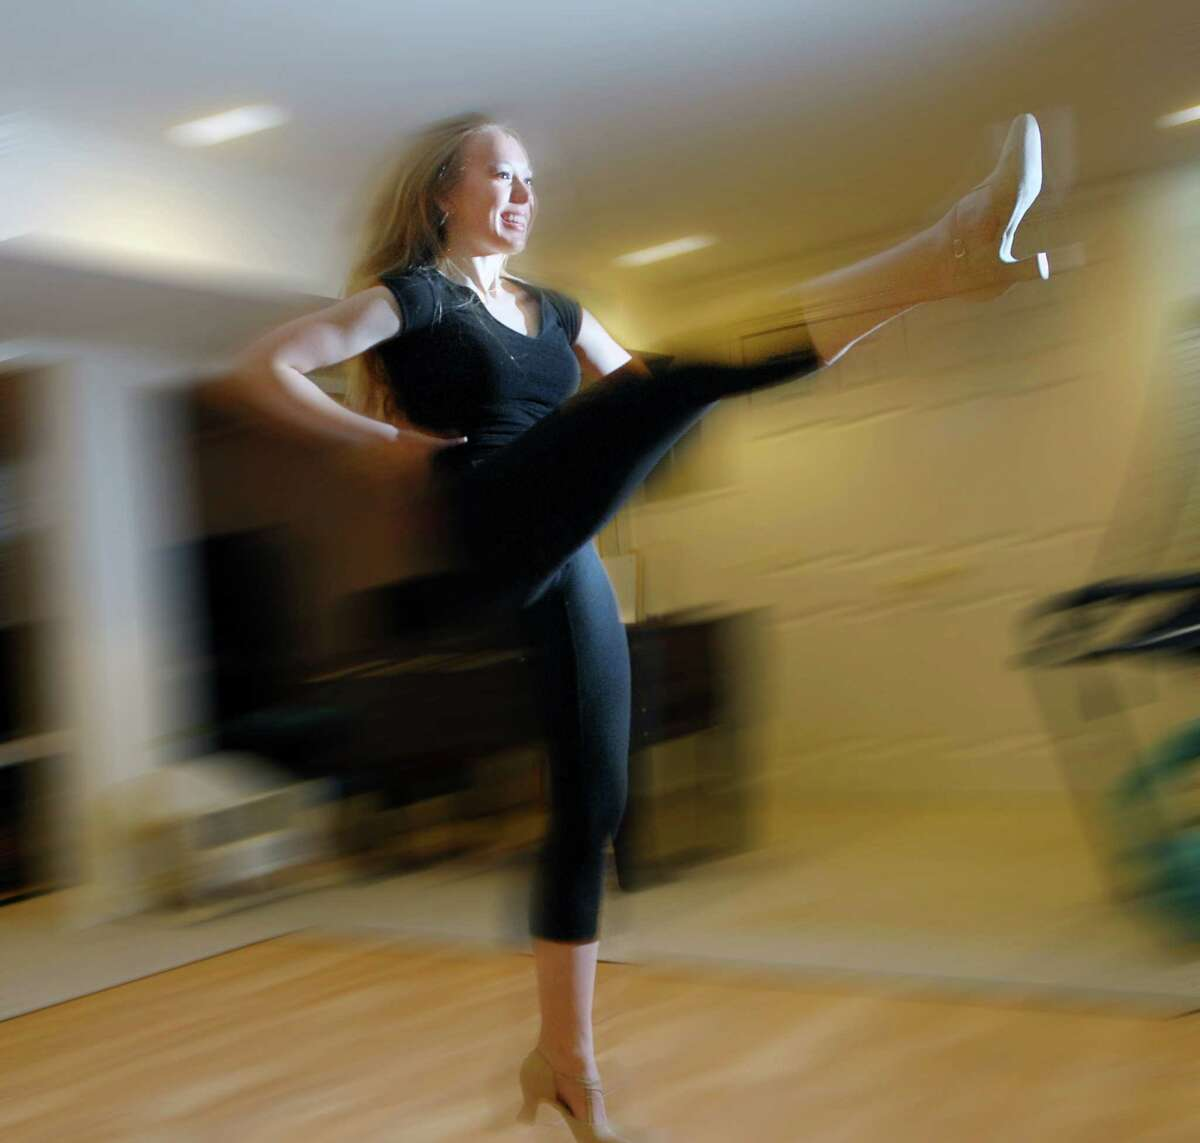 Marisa Hann, 16, works on her dance routine in the basement of her Greenwich home, Friday afternoon, April 13, 2012. Hann, a Greenwich High School student, will be featured in the second episode of MSG Varsity's hit series